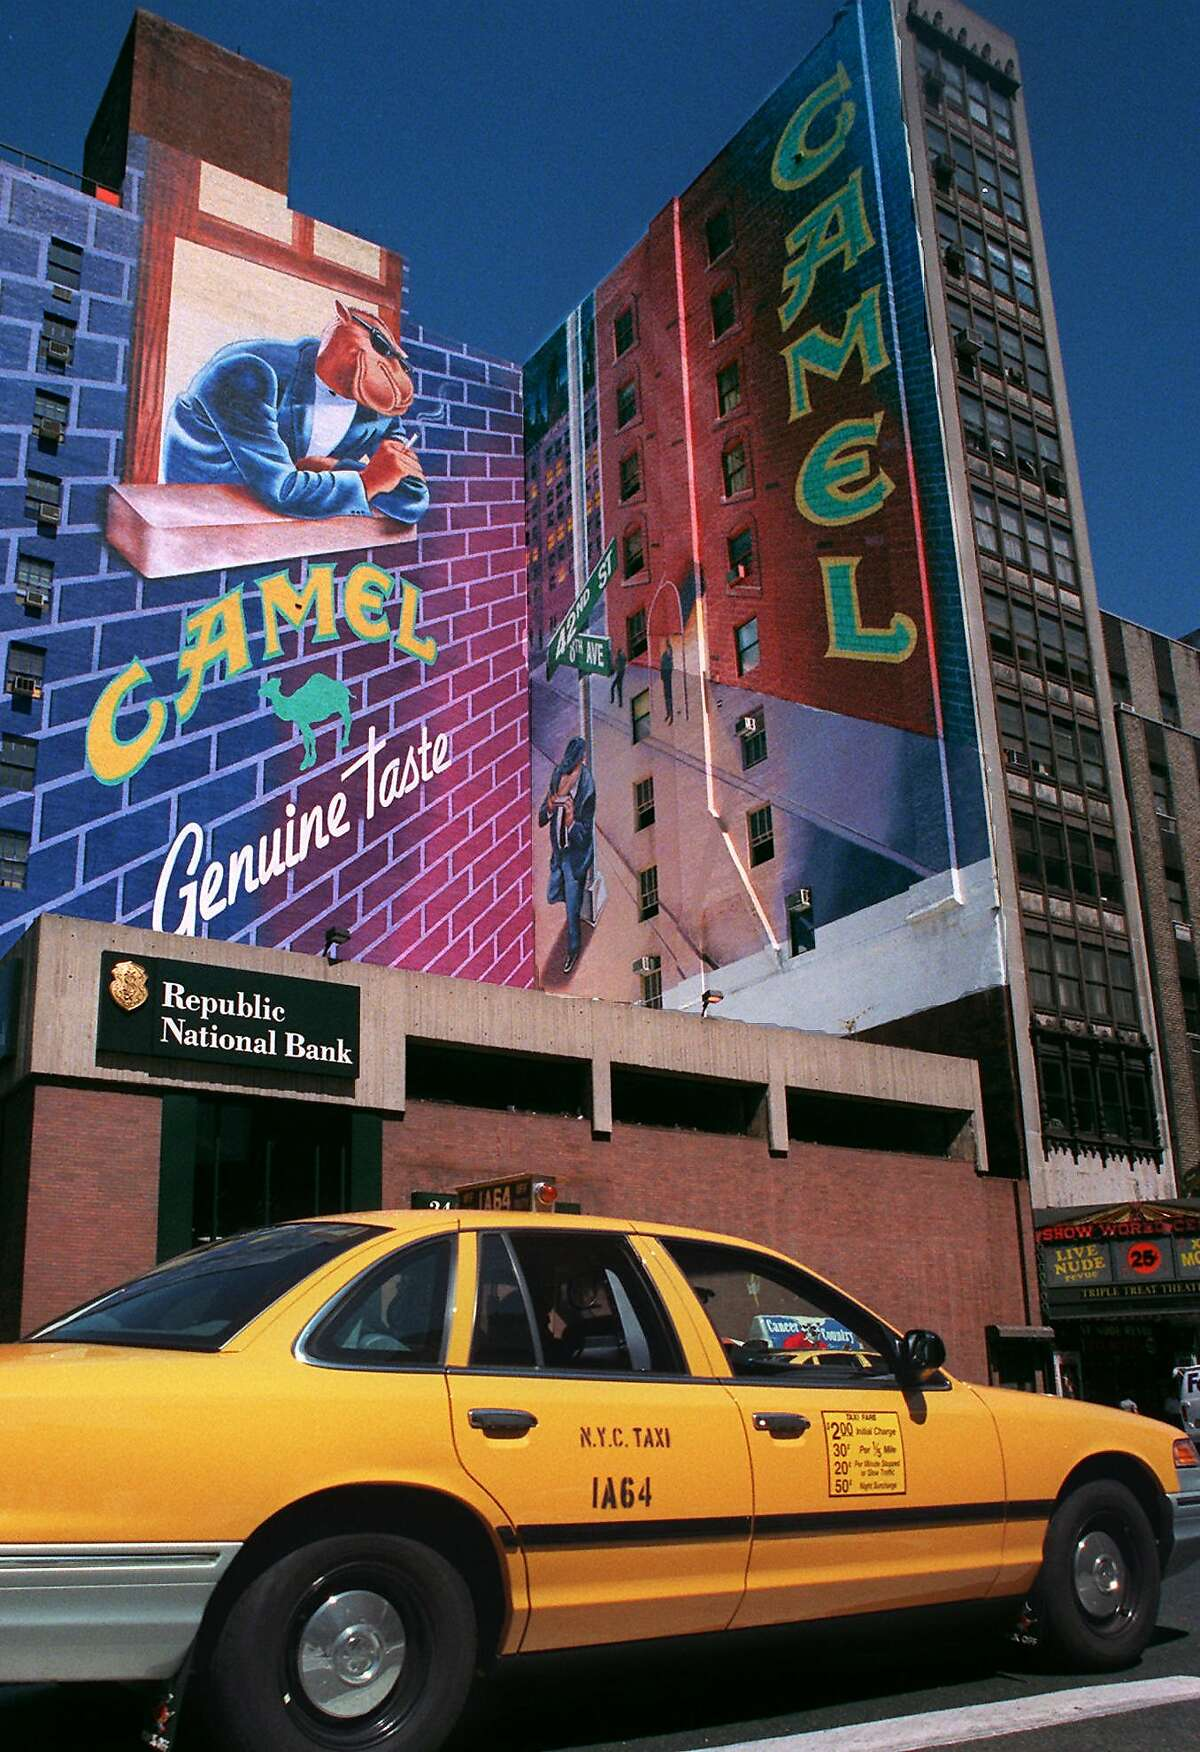 A Joe Camel advertisement is visible above New York's Times Square at 42nd St. and 8th Ave., Thursday July 10, 1997. Reynolds Tobacco Co. announced Thursday that Joe Camel, the jazzy cartoon character blamed for luring kids to smoke, is being retired and replaced by the ordinary, more lifelike camel seen on the cigarette pack label. (AP Photo/Gino Domenico)